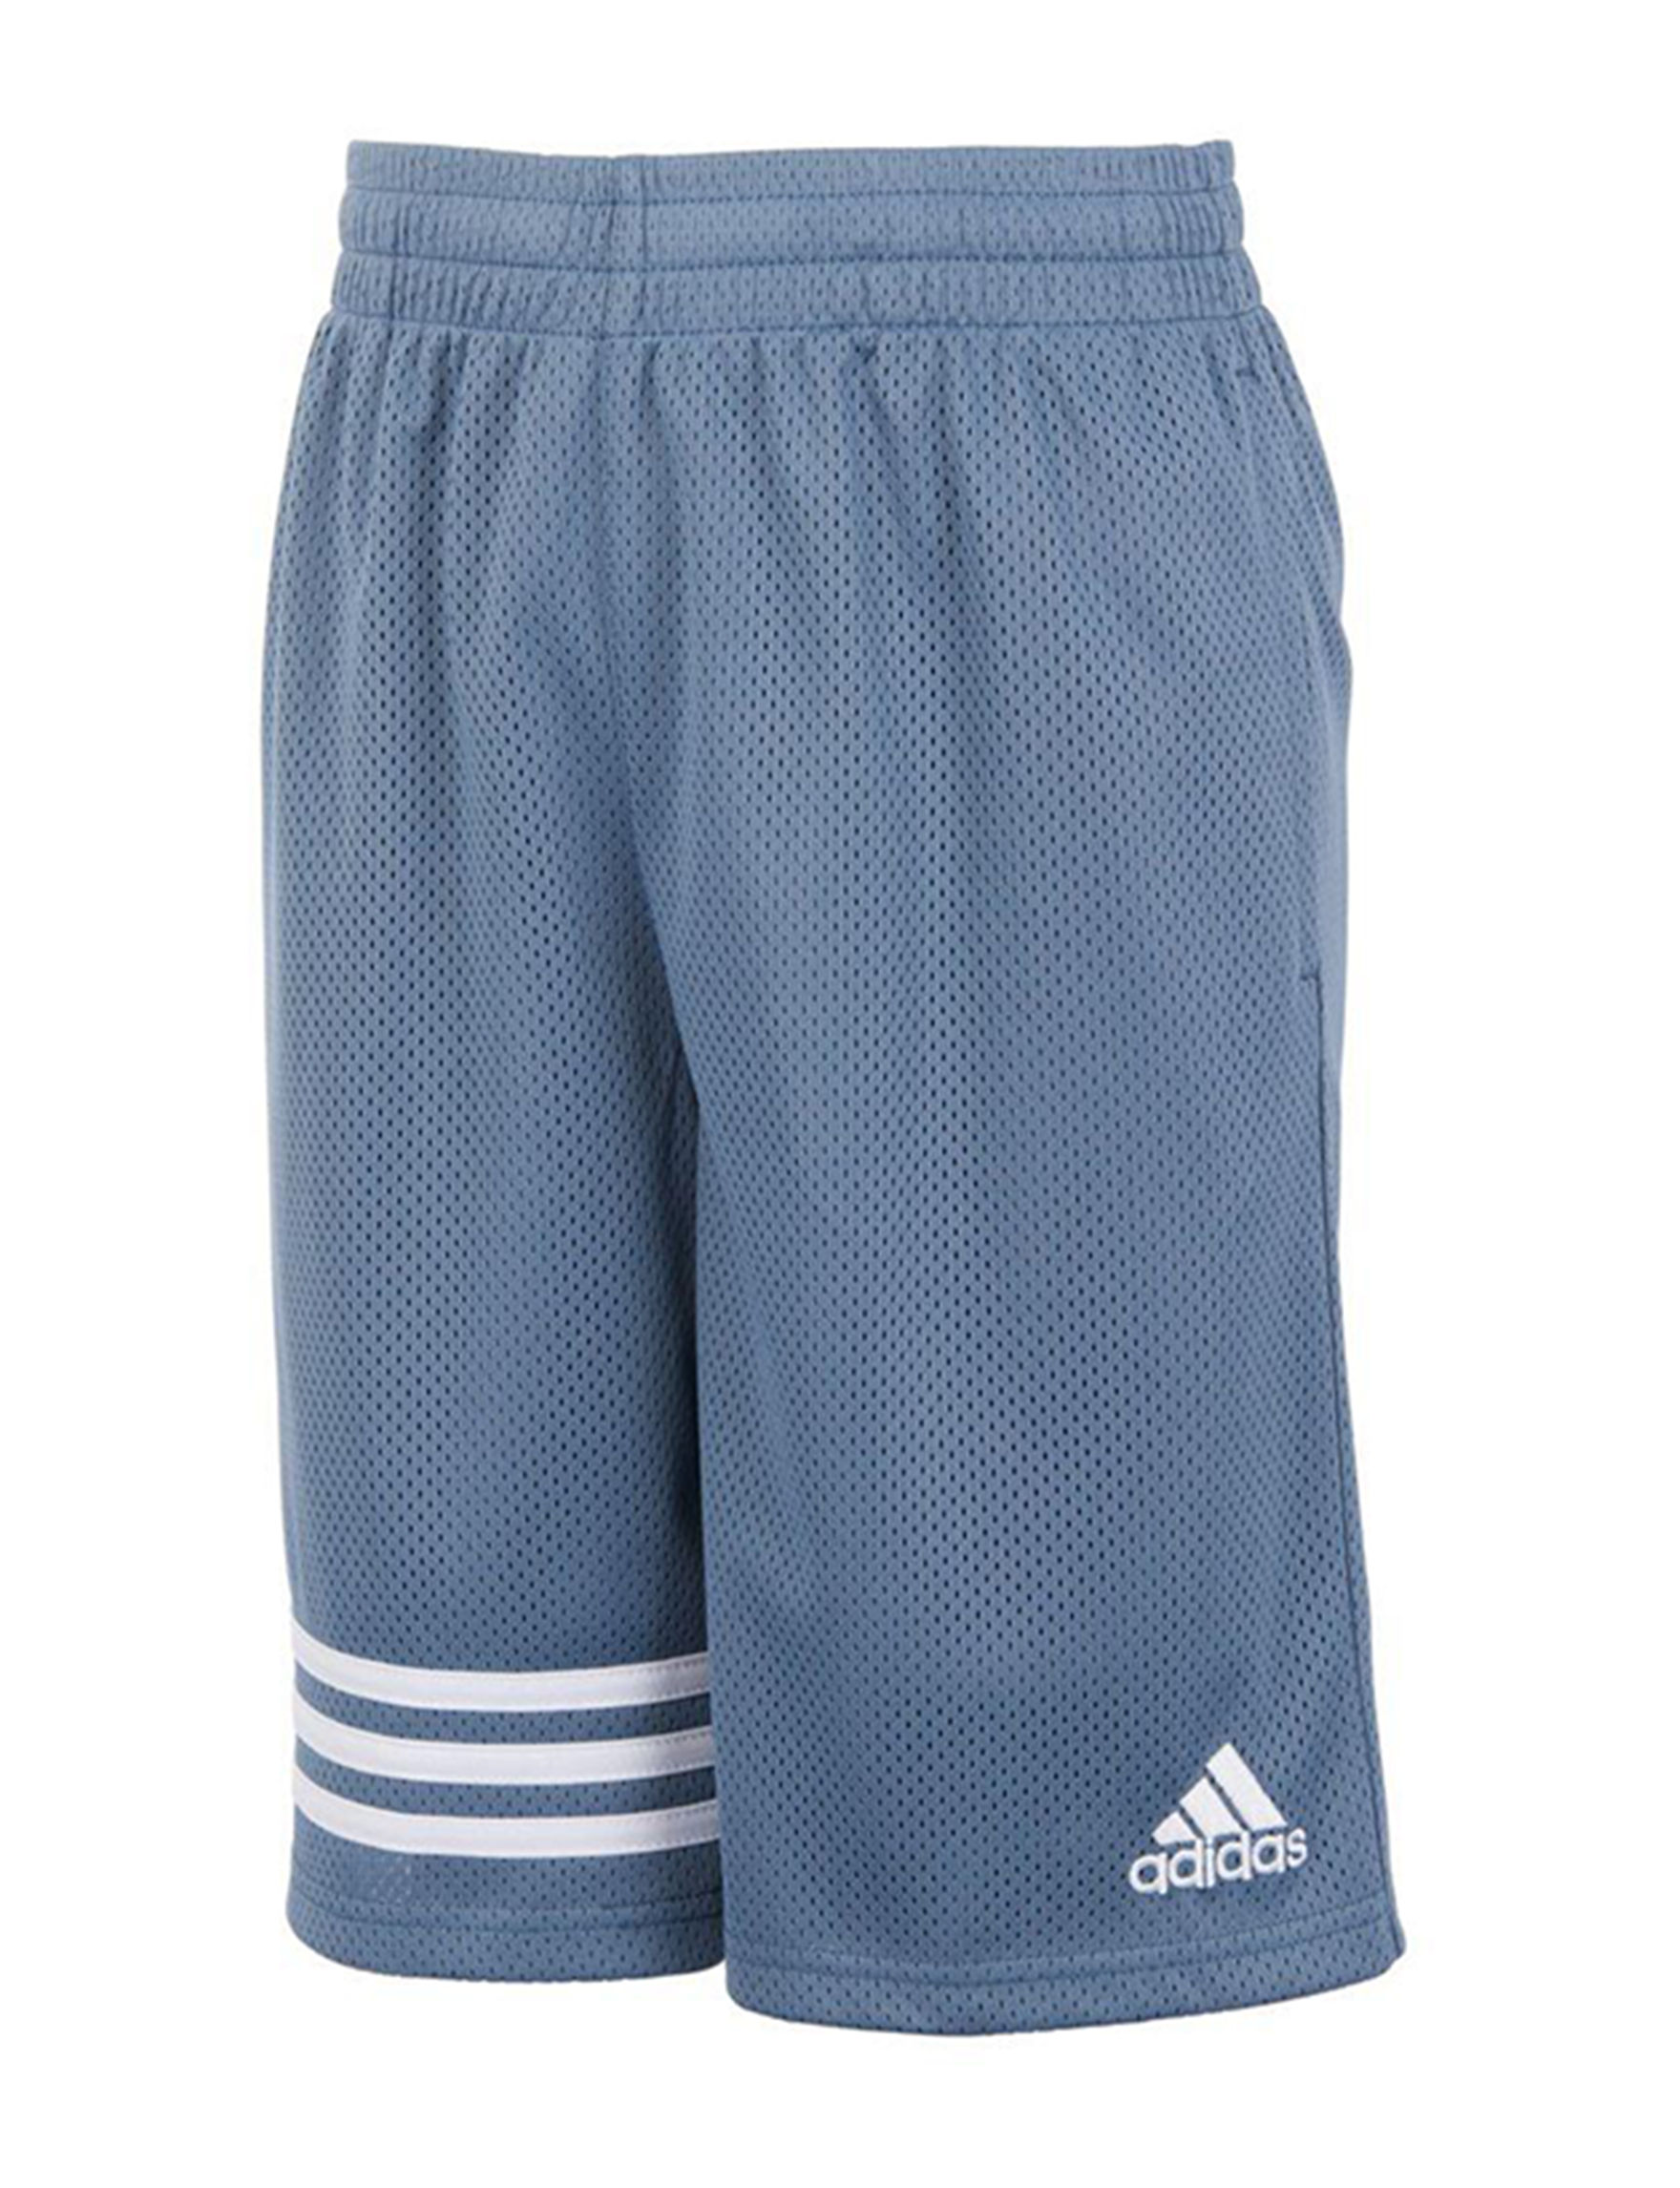 Adidas Blue / White Relaxed